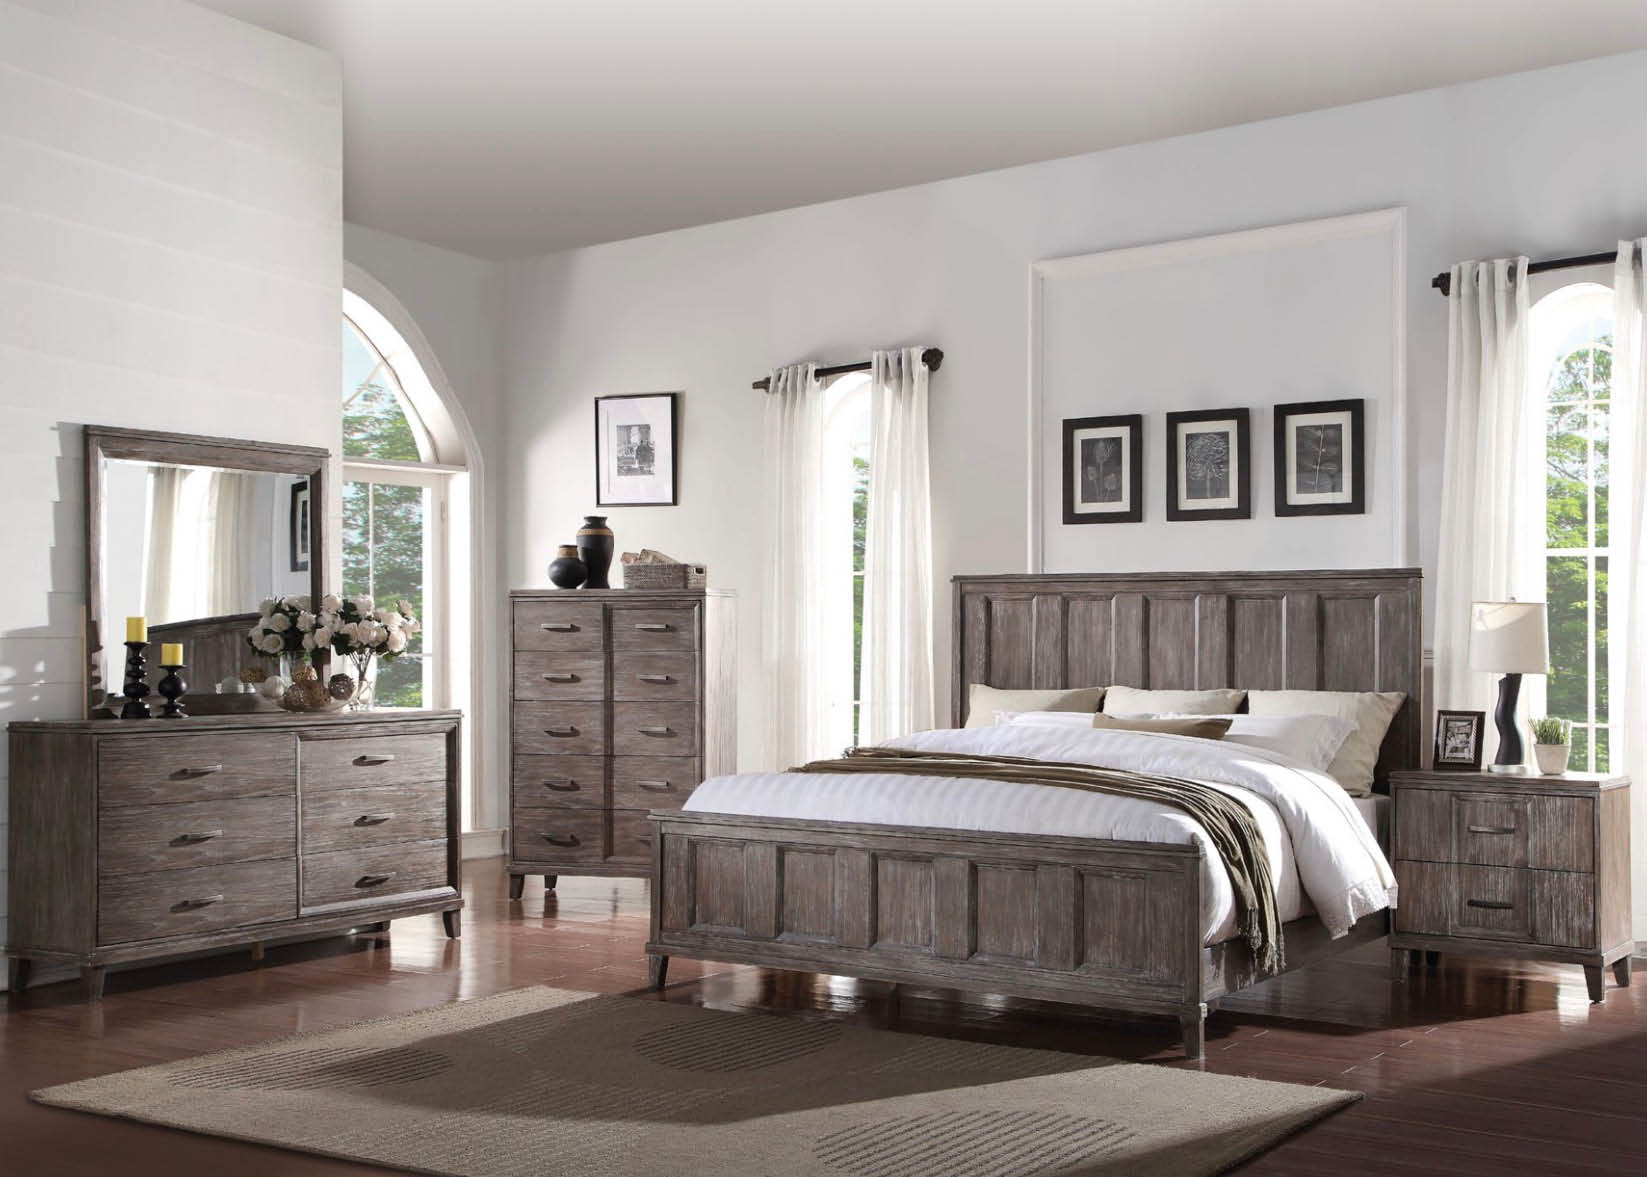 Bedroom furniture near Catalina Foothills